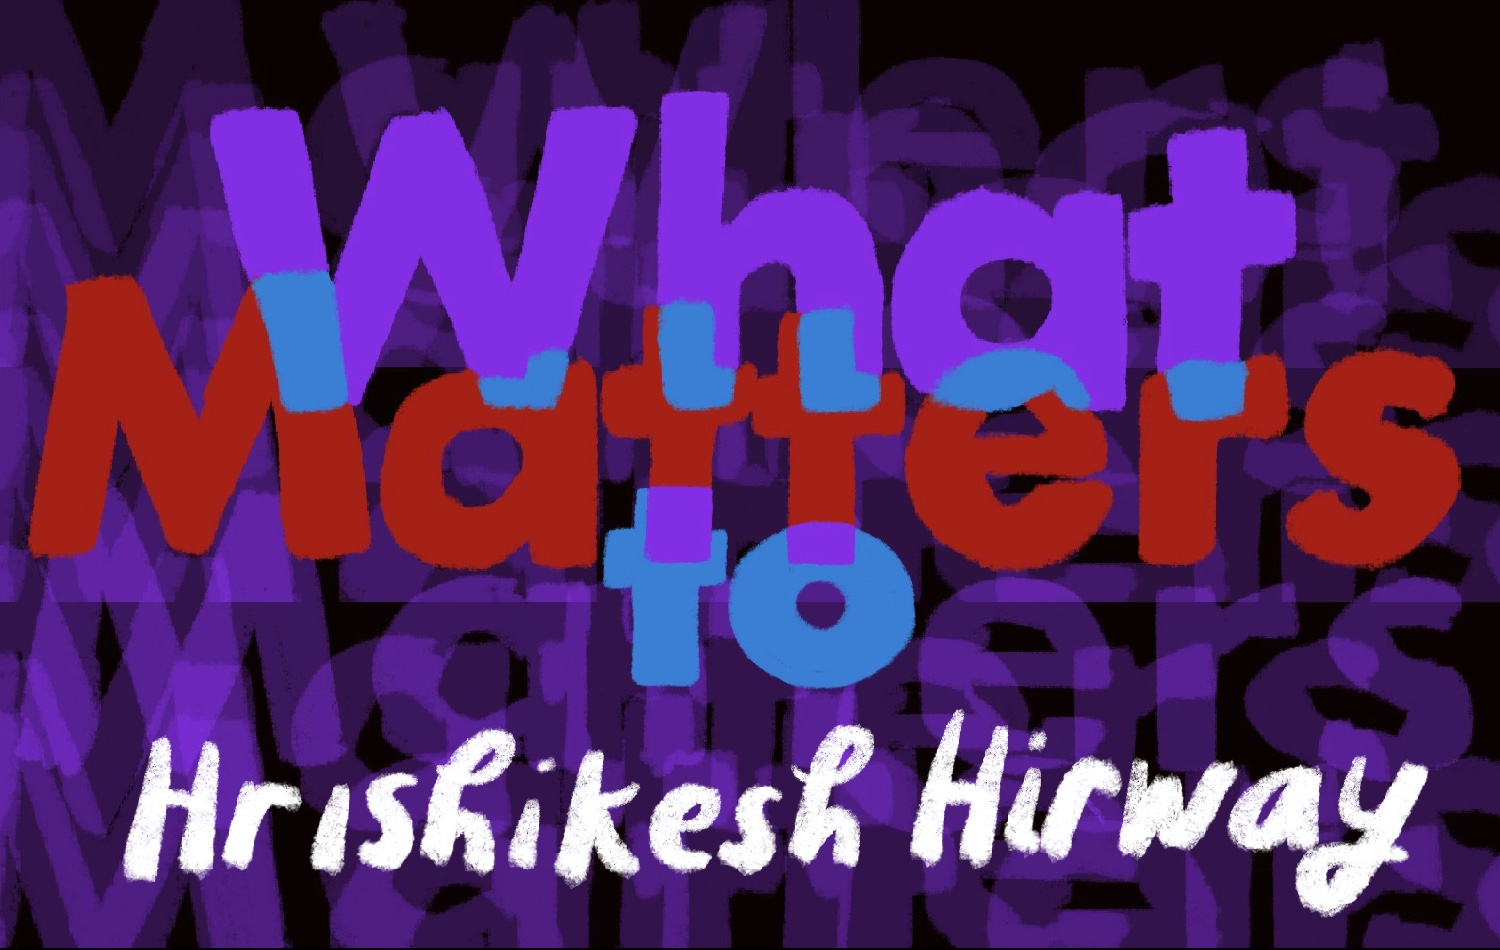 Thumbnail for What Matters: The Meal Hrishikesh Hirway Longs to Eat Again